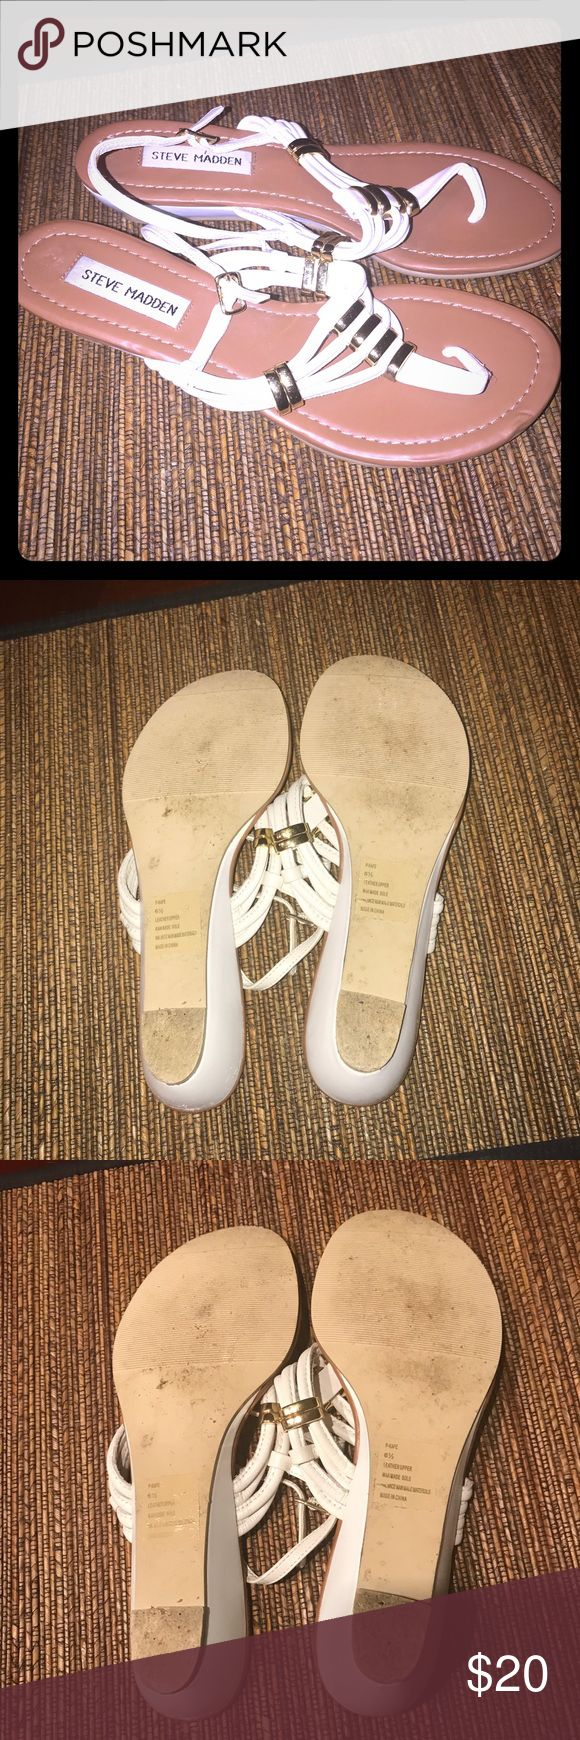 Steve Madden White and gold sandals Steve Madden p-Kape White and gold summer sandals  1.98-2 inch heel  I have these in black and don't need them in white  Worn but in great condition Leather upper with gold buckle details Functional ankle strap buckle closure Size 6.5 Steve Madden Shoes Sandals